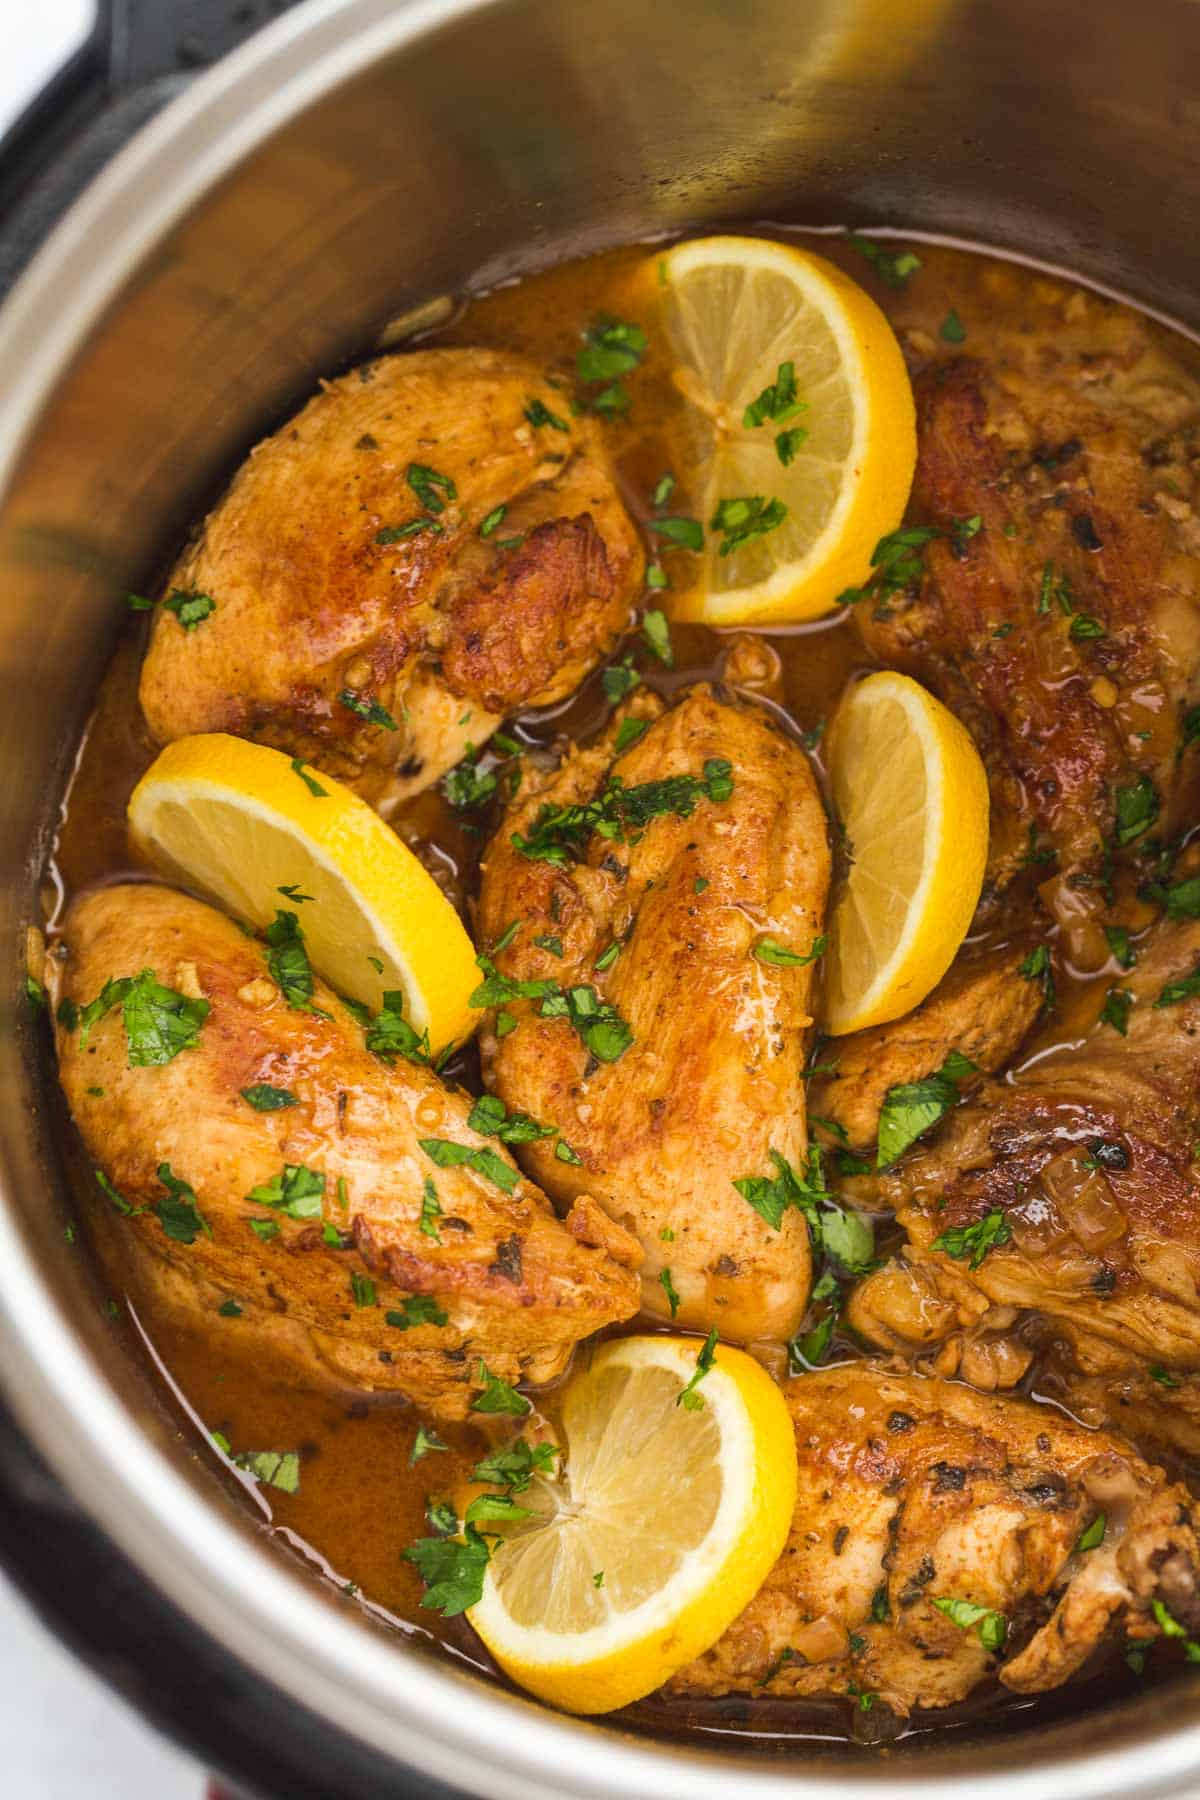 Lemon garlic chicken, and lemon slices in the Instant Pot